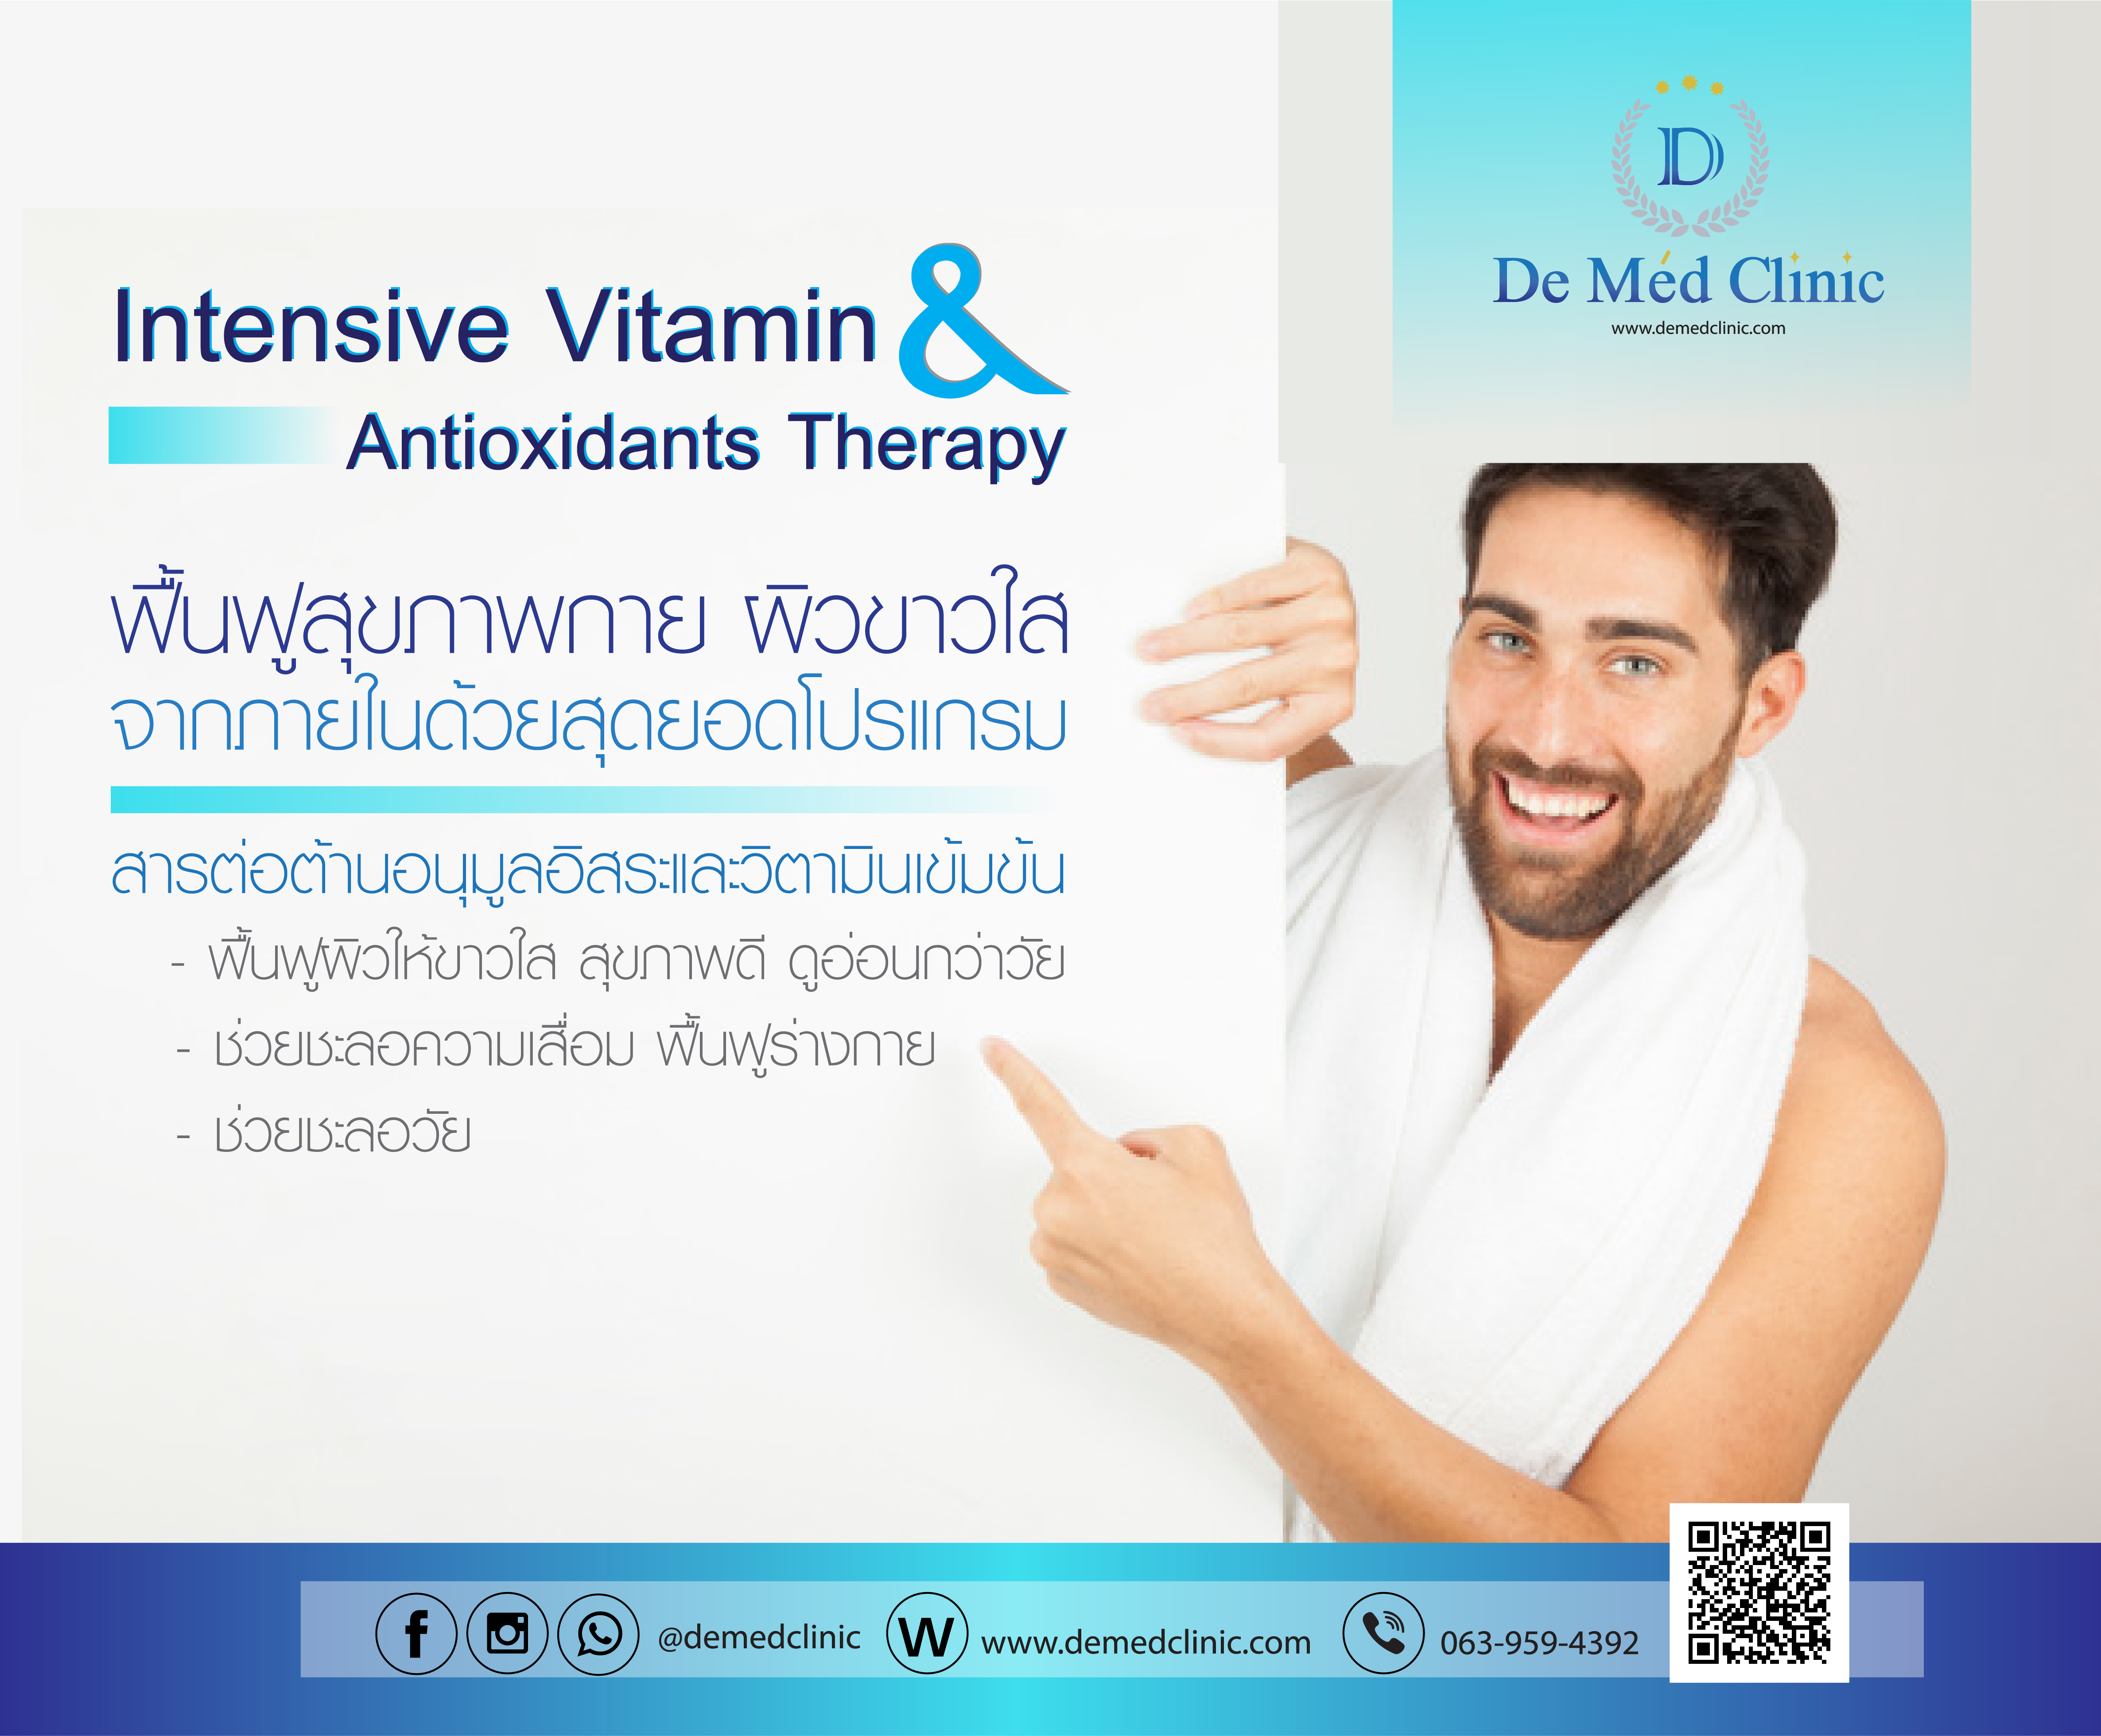 Intensive Vitamin and Antioxidants Therapy by DeMed Clinic